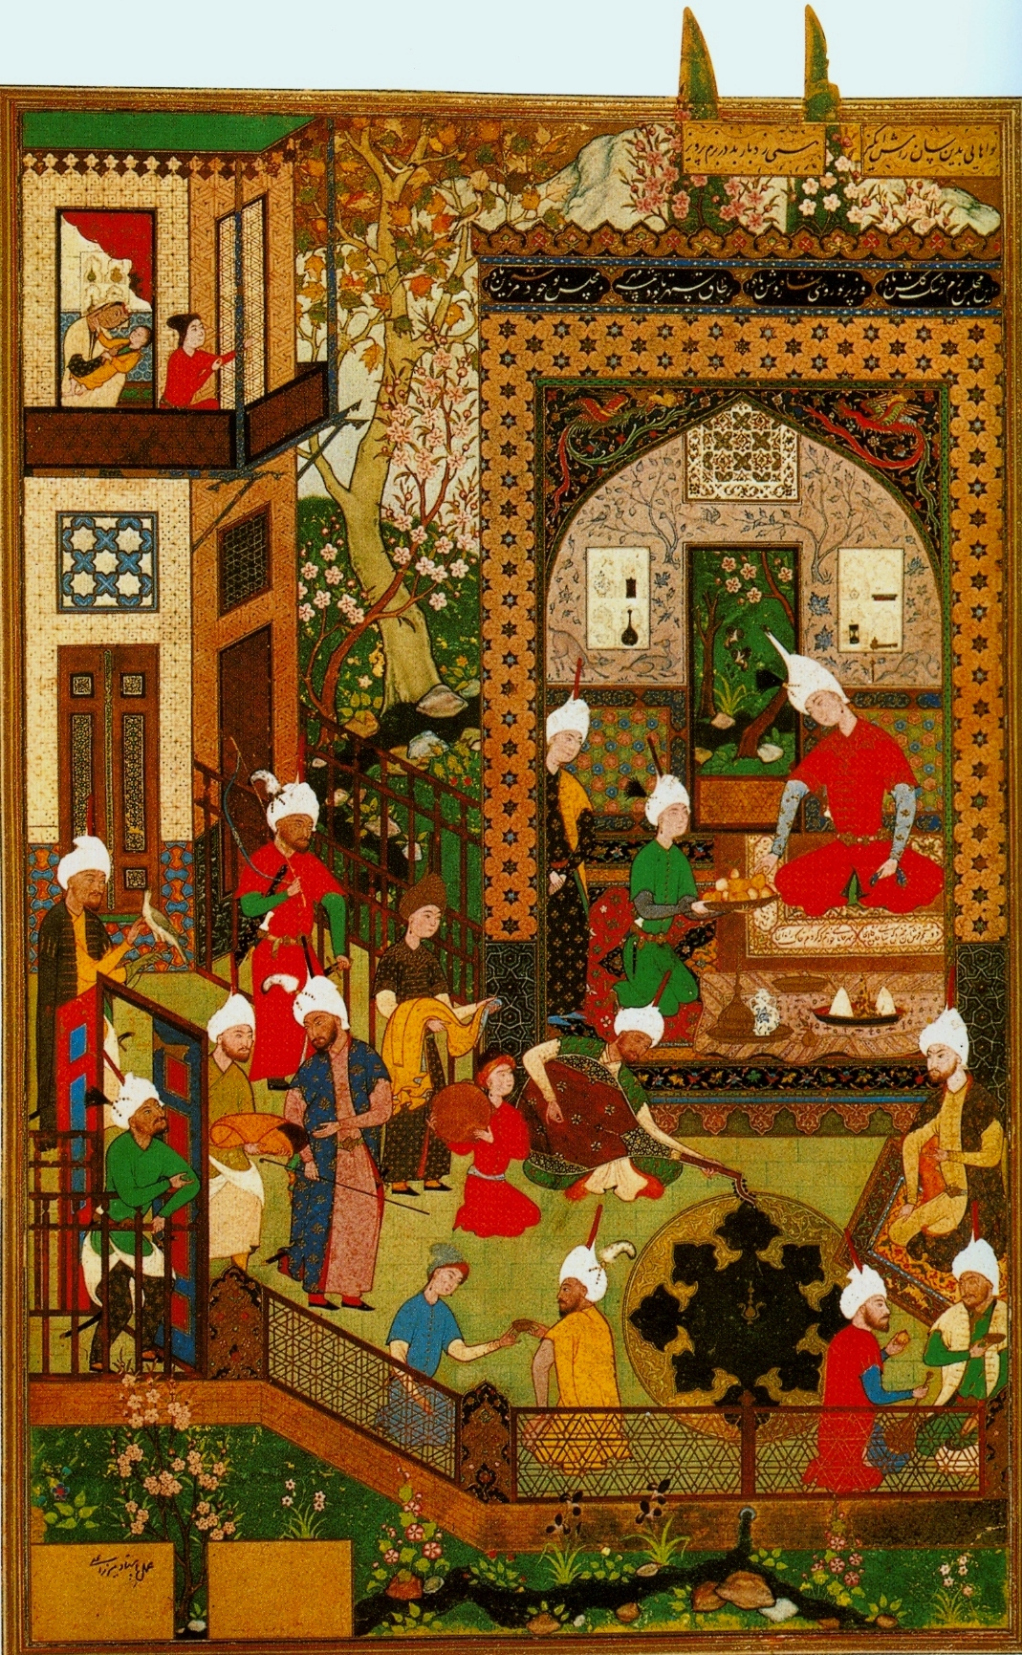 Persian Miniatur_Barbad Plays for Khusraw, 1539-43, British Library, London. Barbad was a musician under the rule of the Sassanid King Khusraw. Wikipedia [Public Domain]